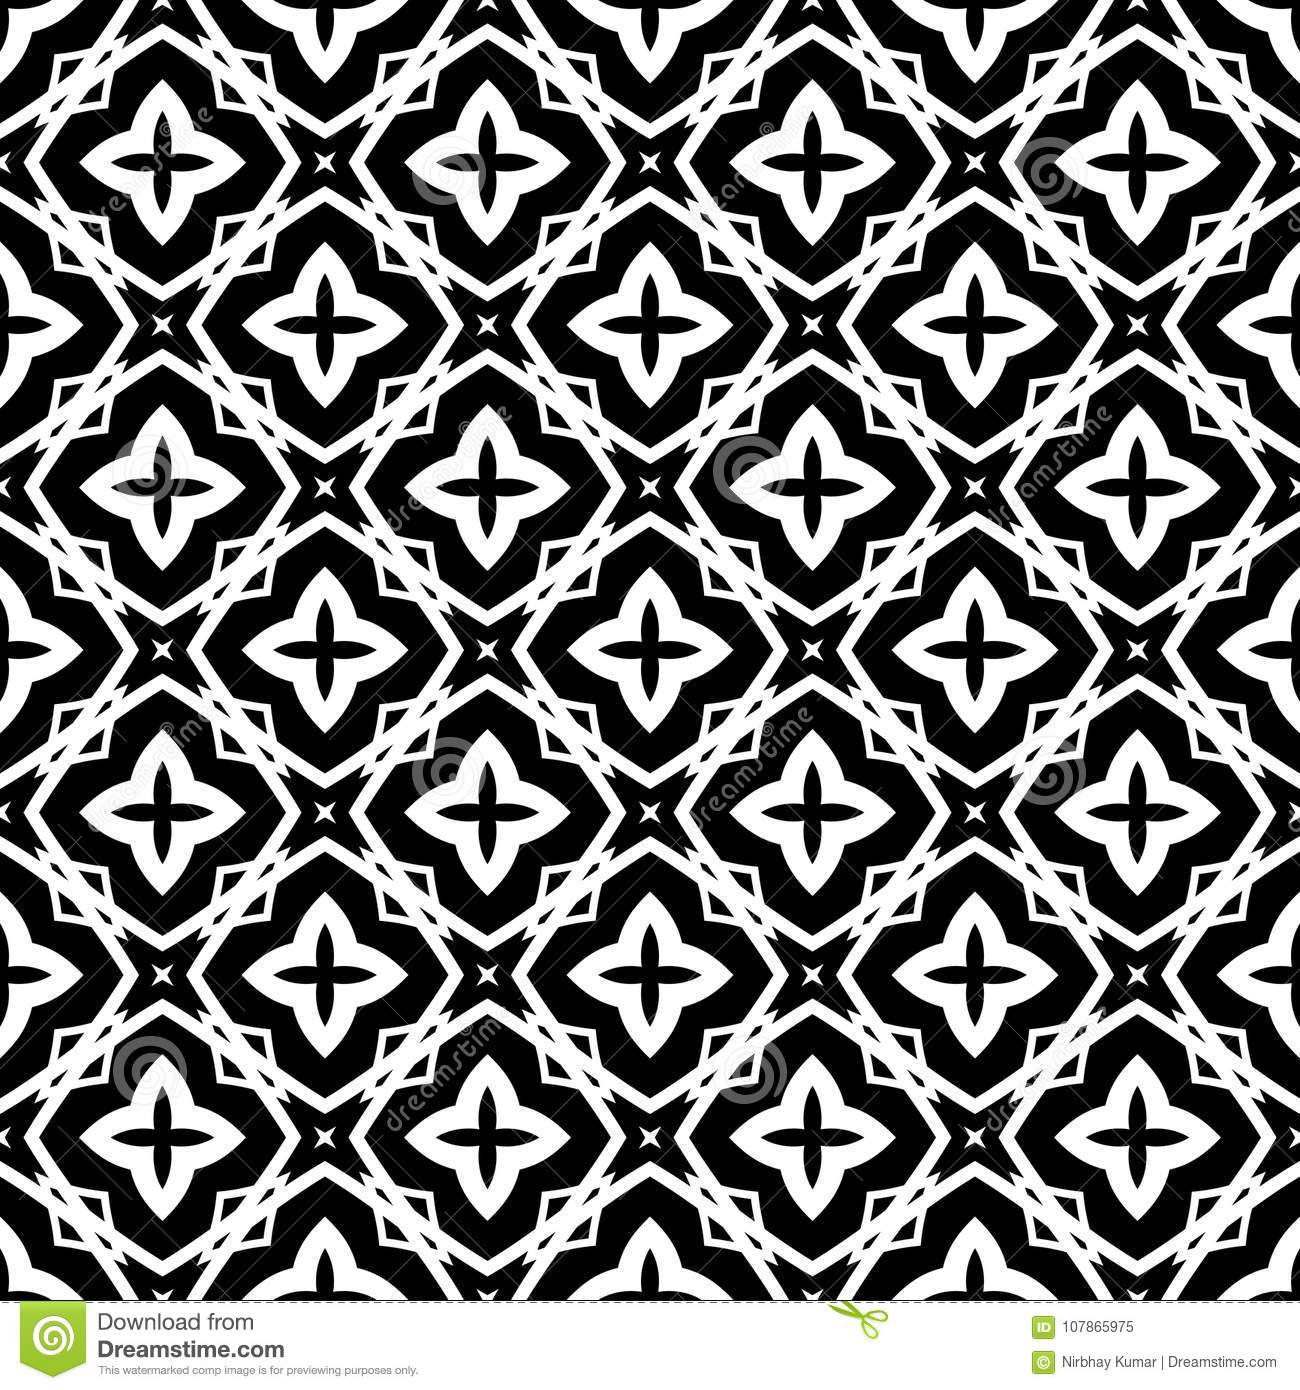 Simple Wallpaper Home Screen Black And White - pattern-website-background-wallpaper-screen-sever-book-cover-printing-laser-cutting-designs-vector-black-white-107865975  Pic_757279.jpg